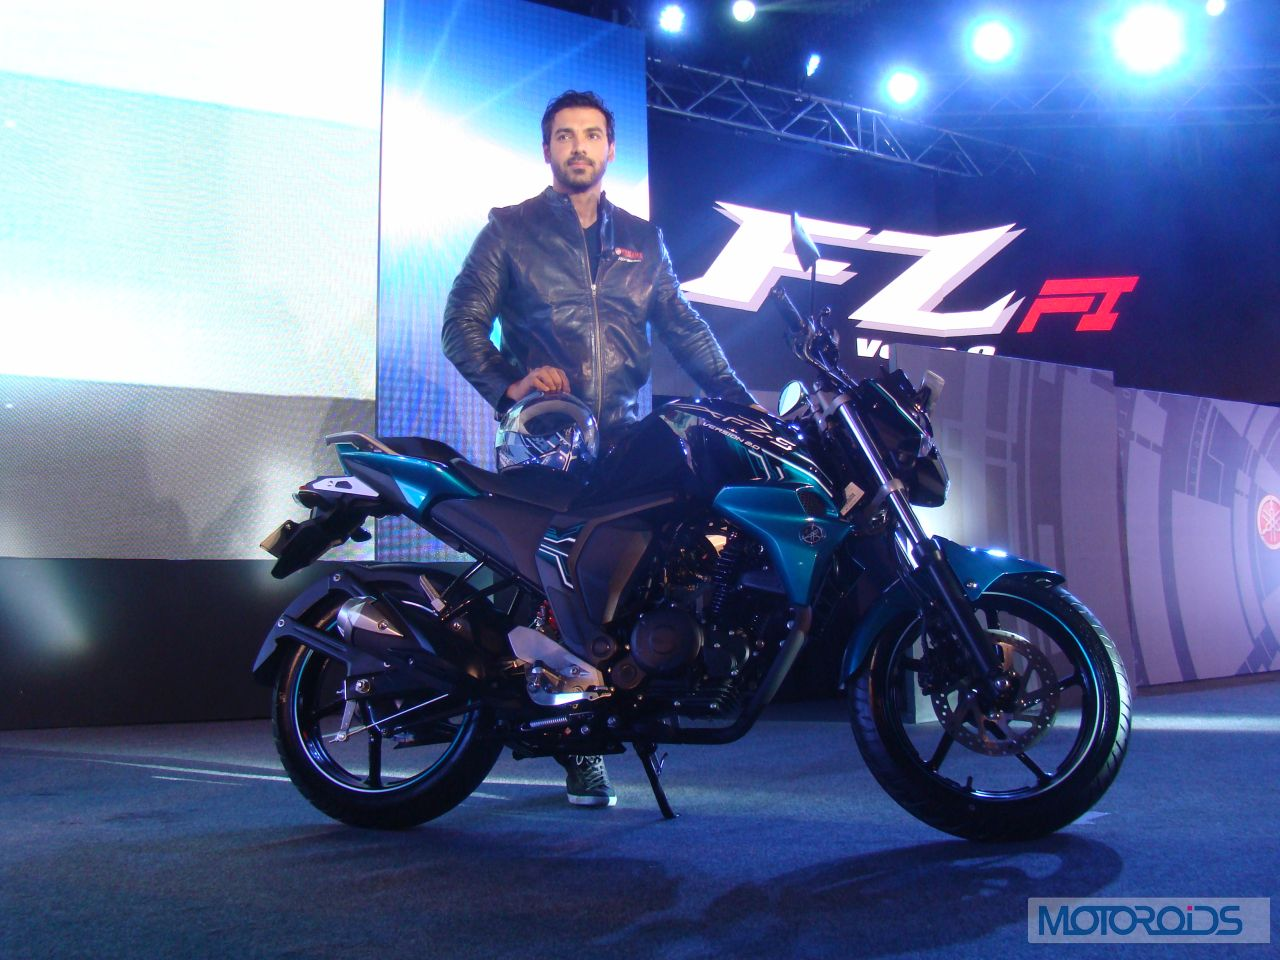 Yamaha Fz16 Price In India Specifications Images Motoroids